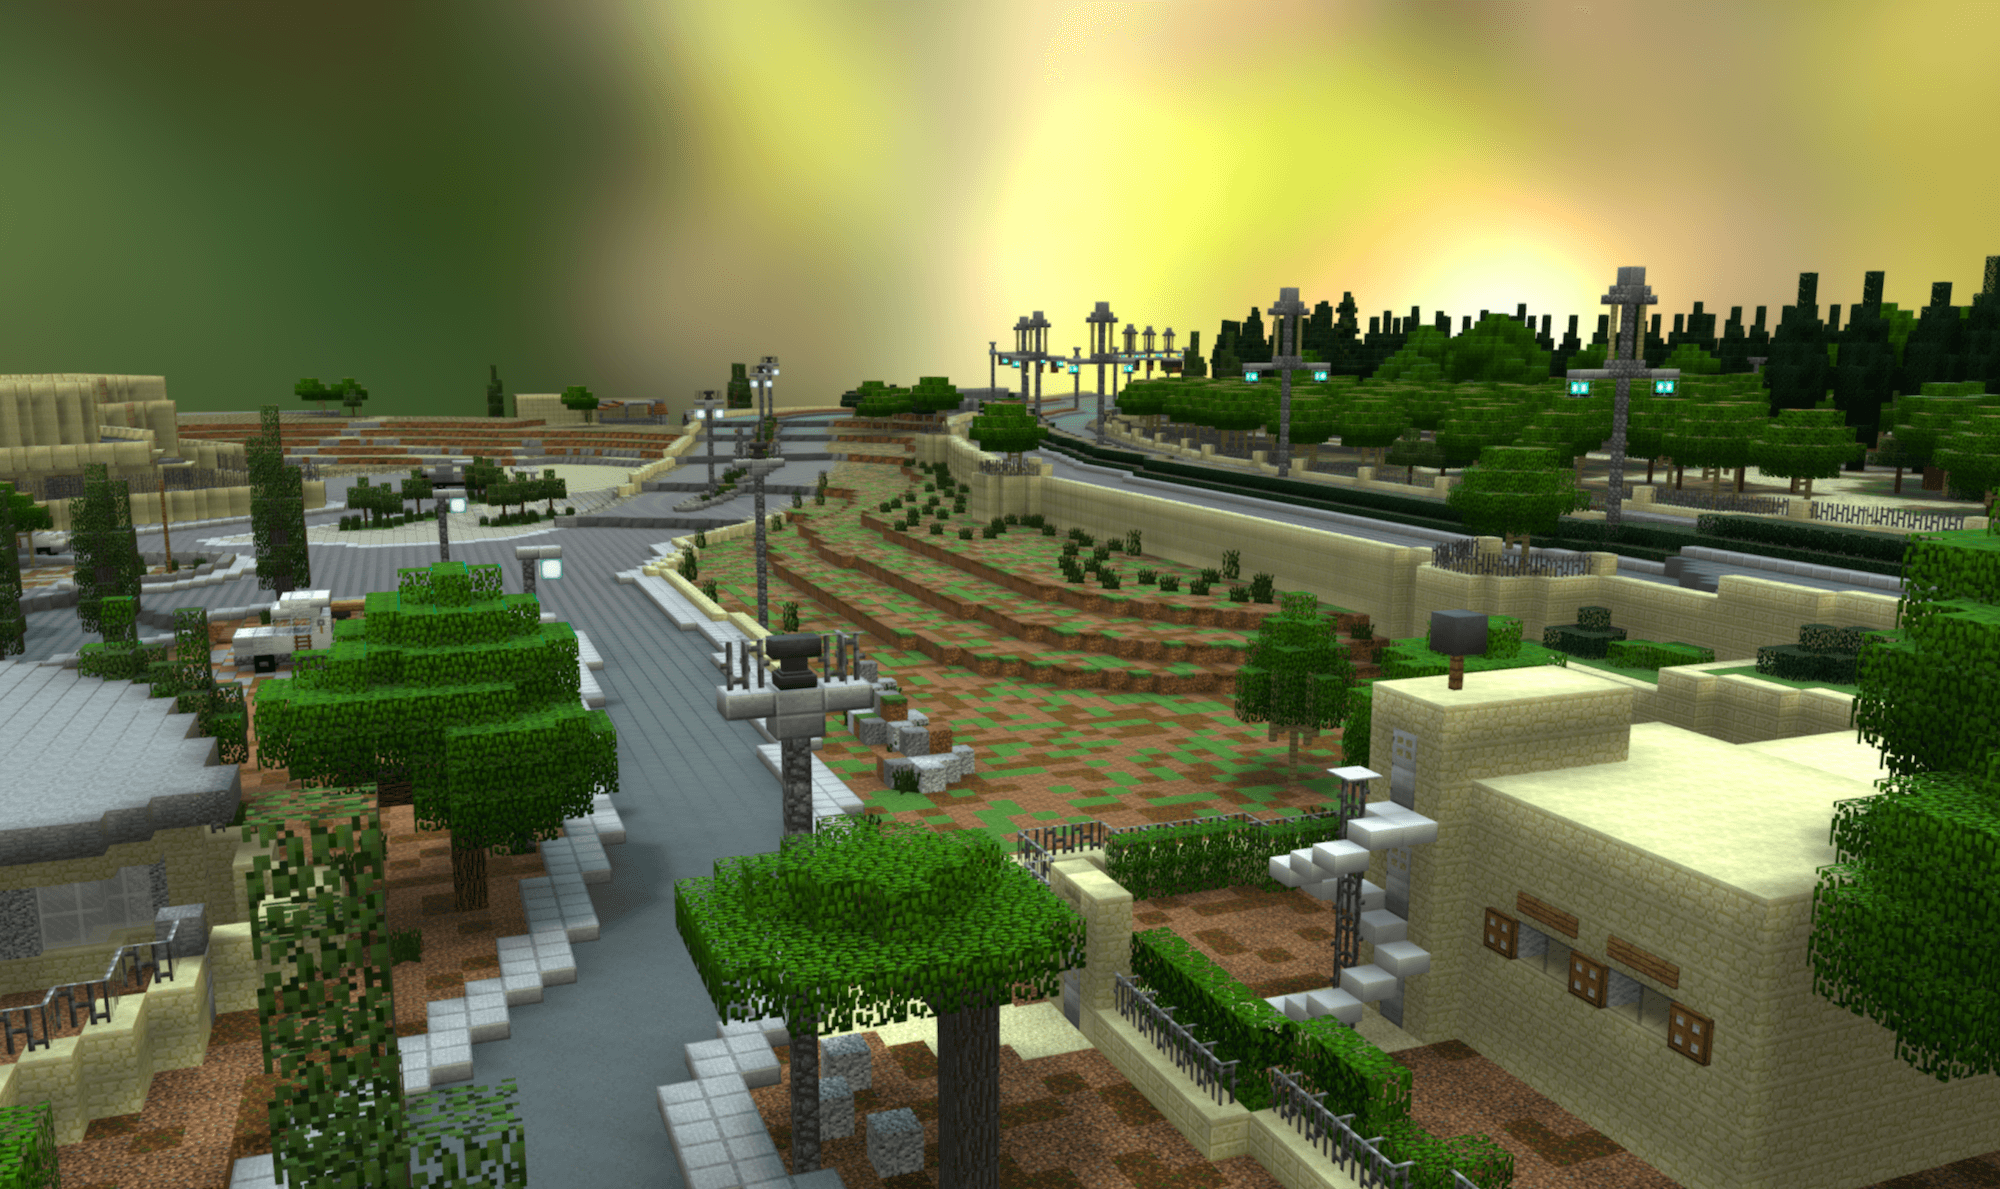 3D Minecraft Model of Community-Designed Public Space, Palestine